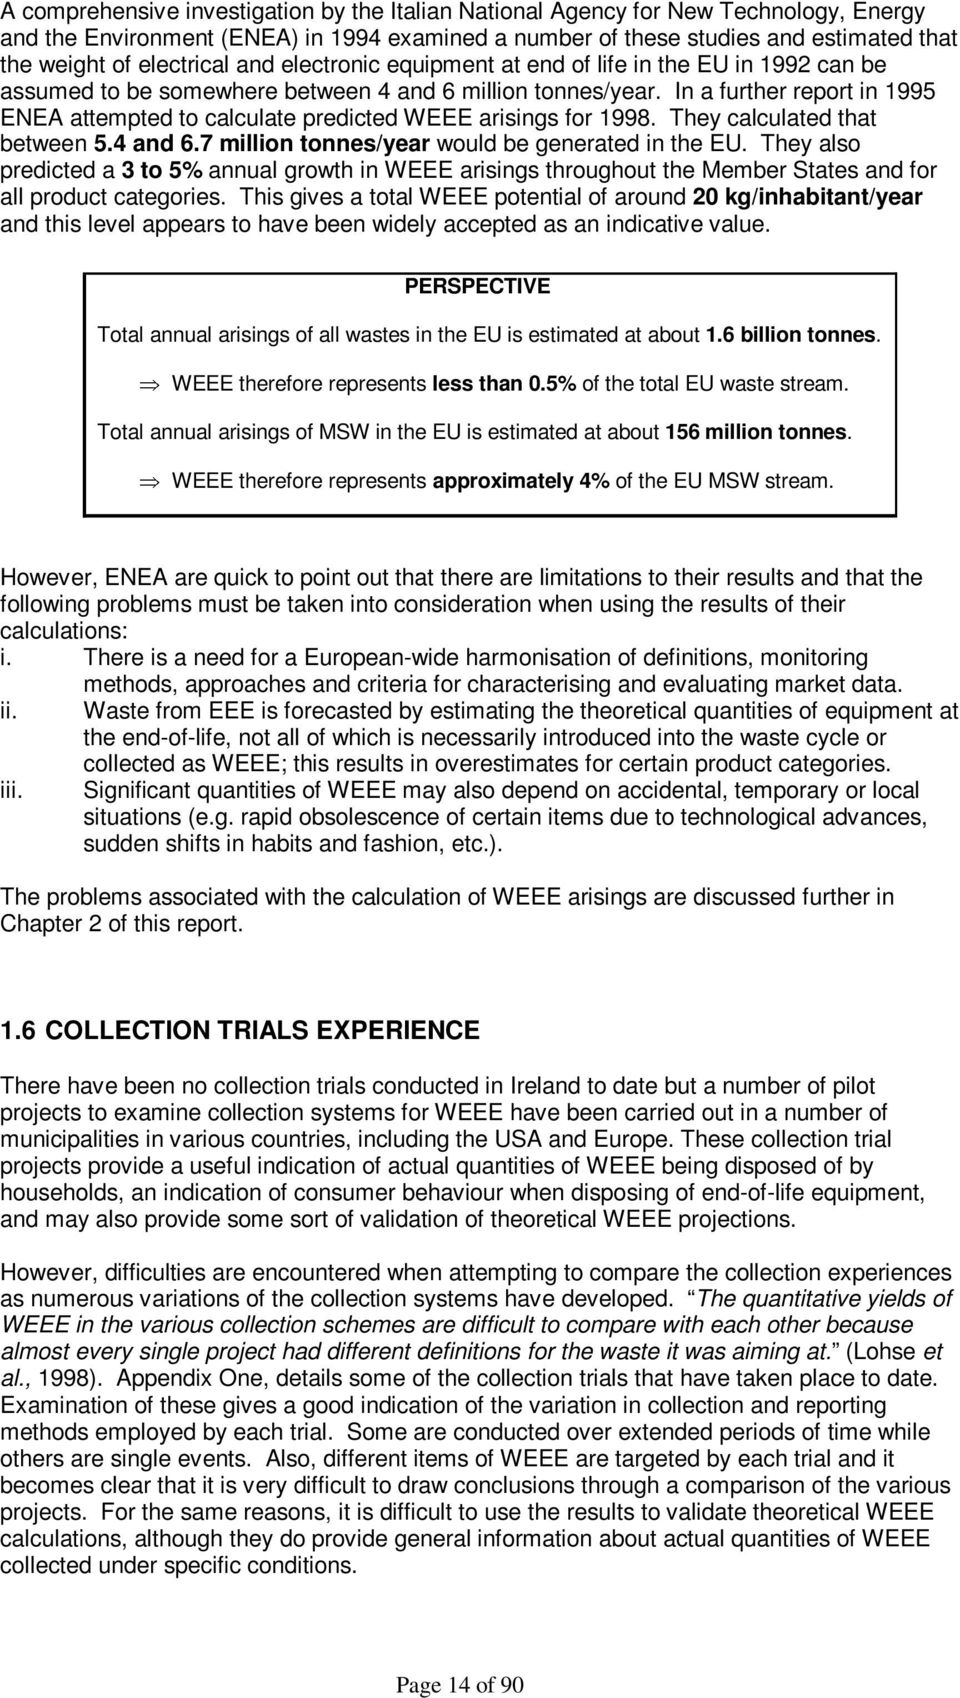 In a further report in 1995 ENEA attempted to calculate predicted WEEE arisings for 1998. They calculated that between 5.4 and 6.7 million tonnes/year would be generated in the EU.